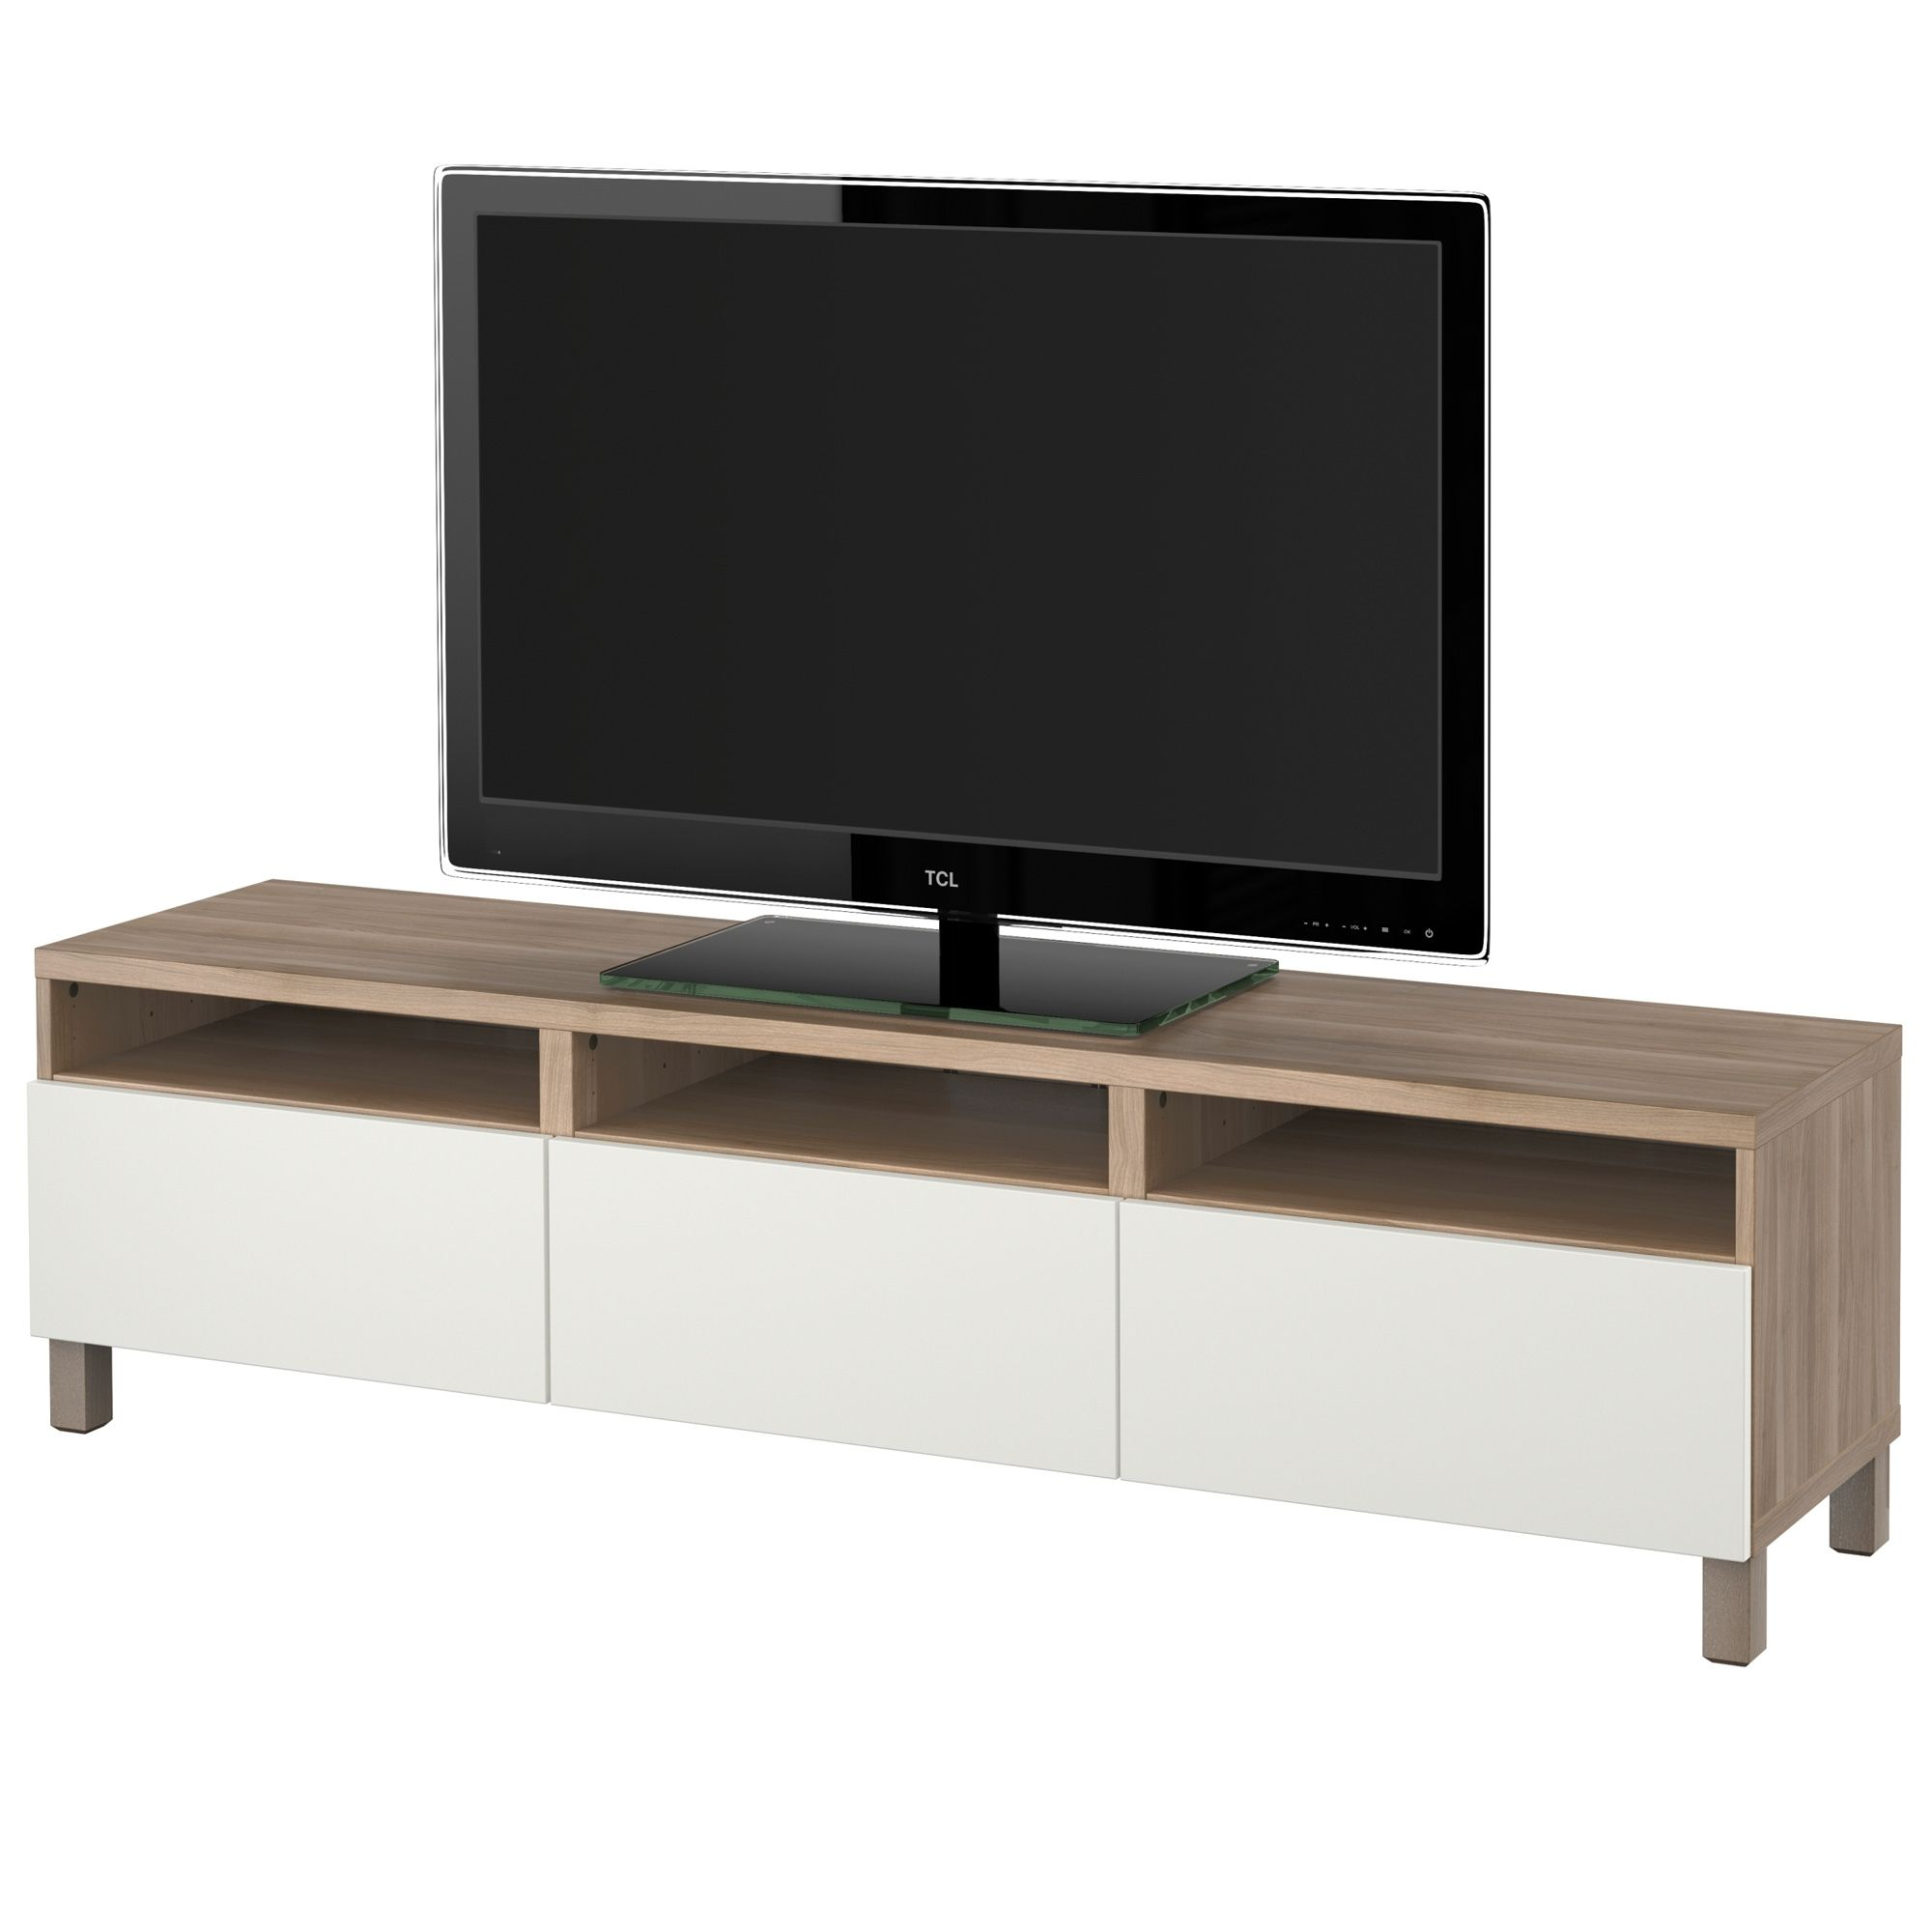 Mueble lack ikea perfect mueble lack with mueble lack for Mueble lack ikea